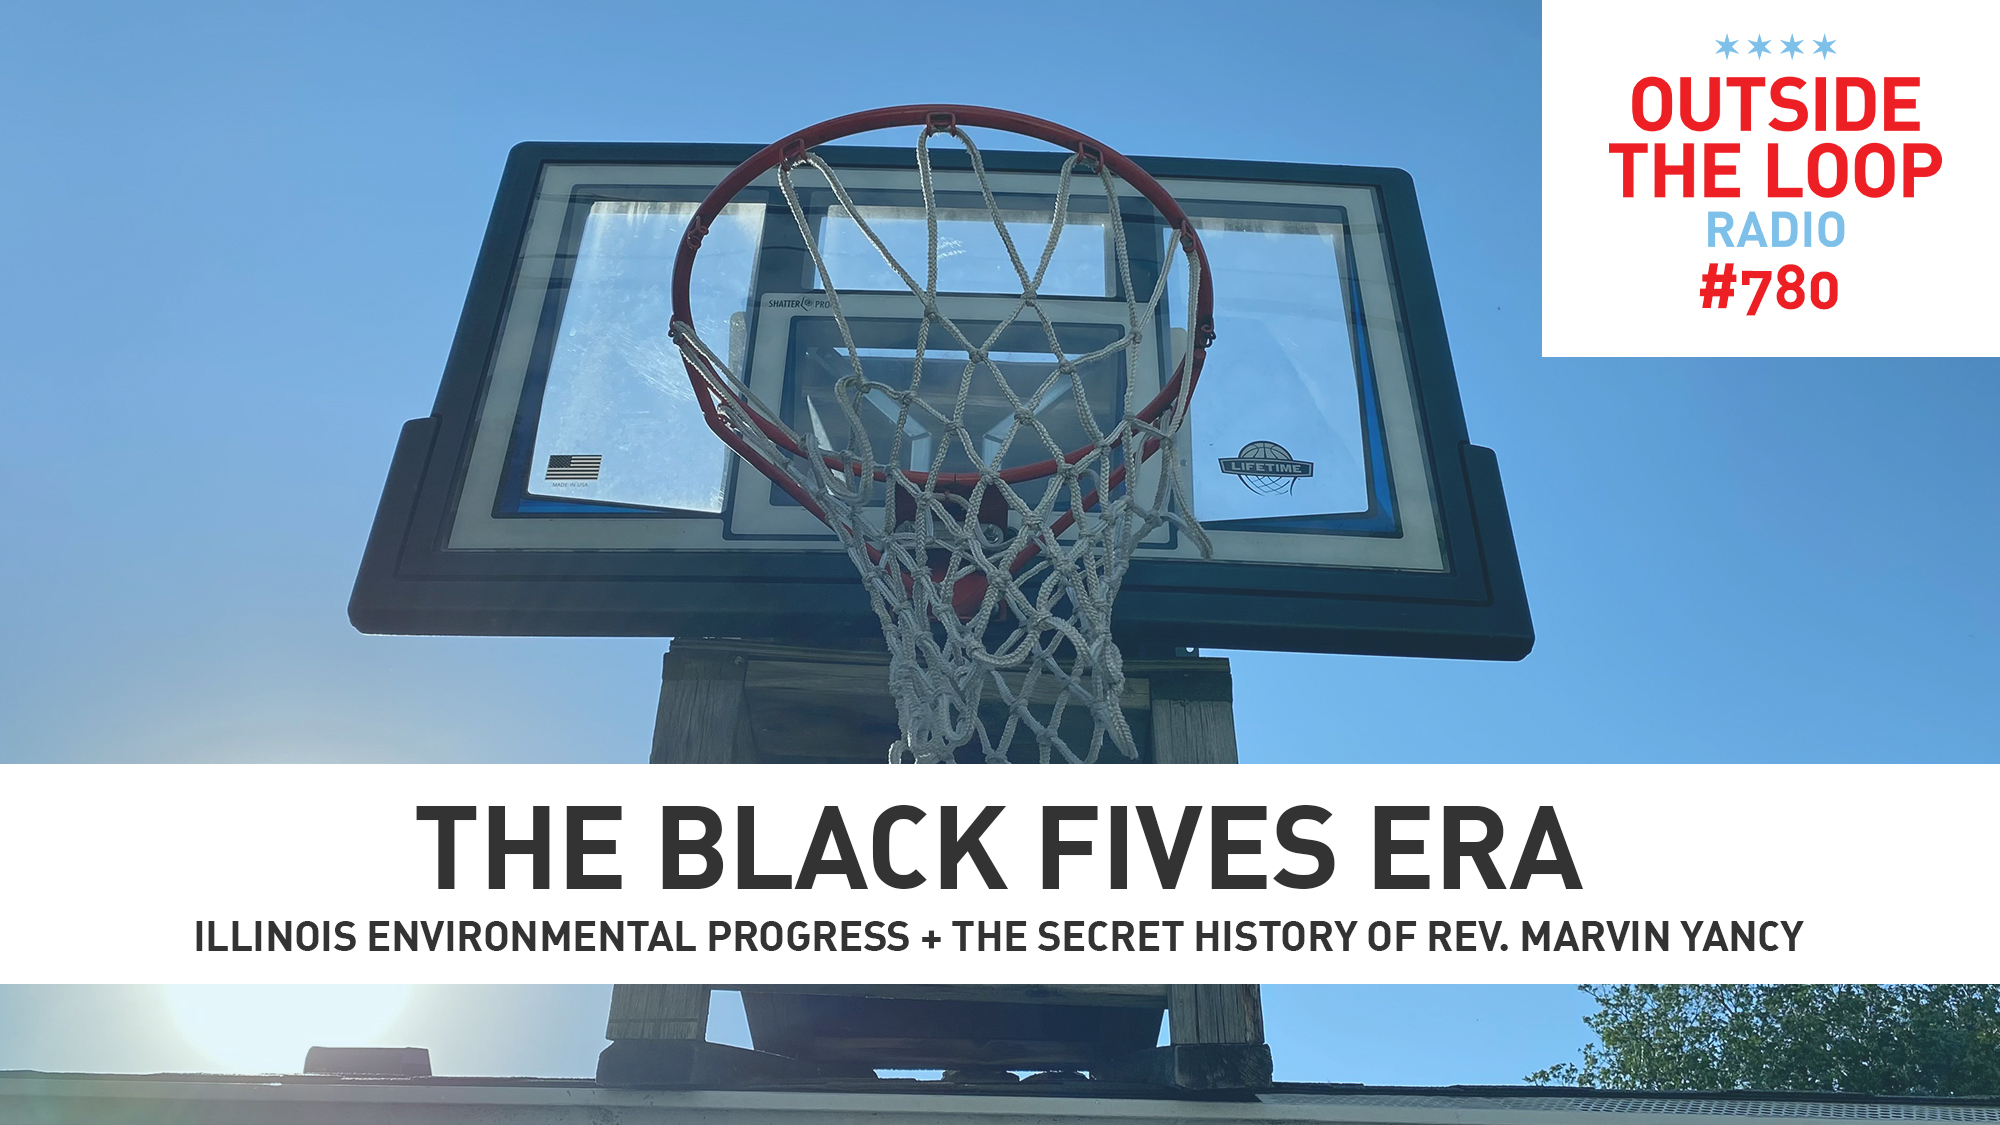 The Black Fives Era influenced basketball as we know it today. (Photo credit: Mike Stephen/WGN Radio)